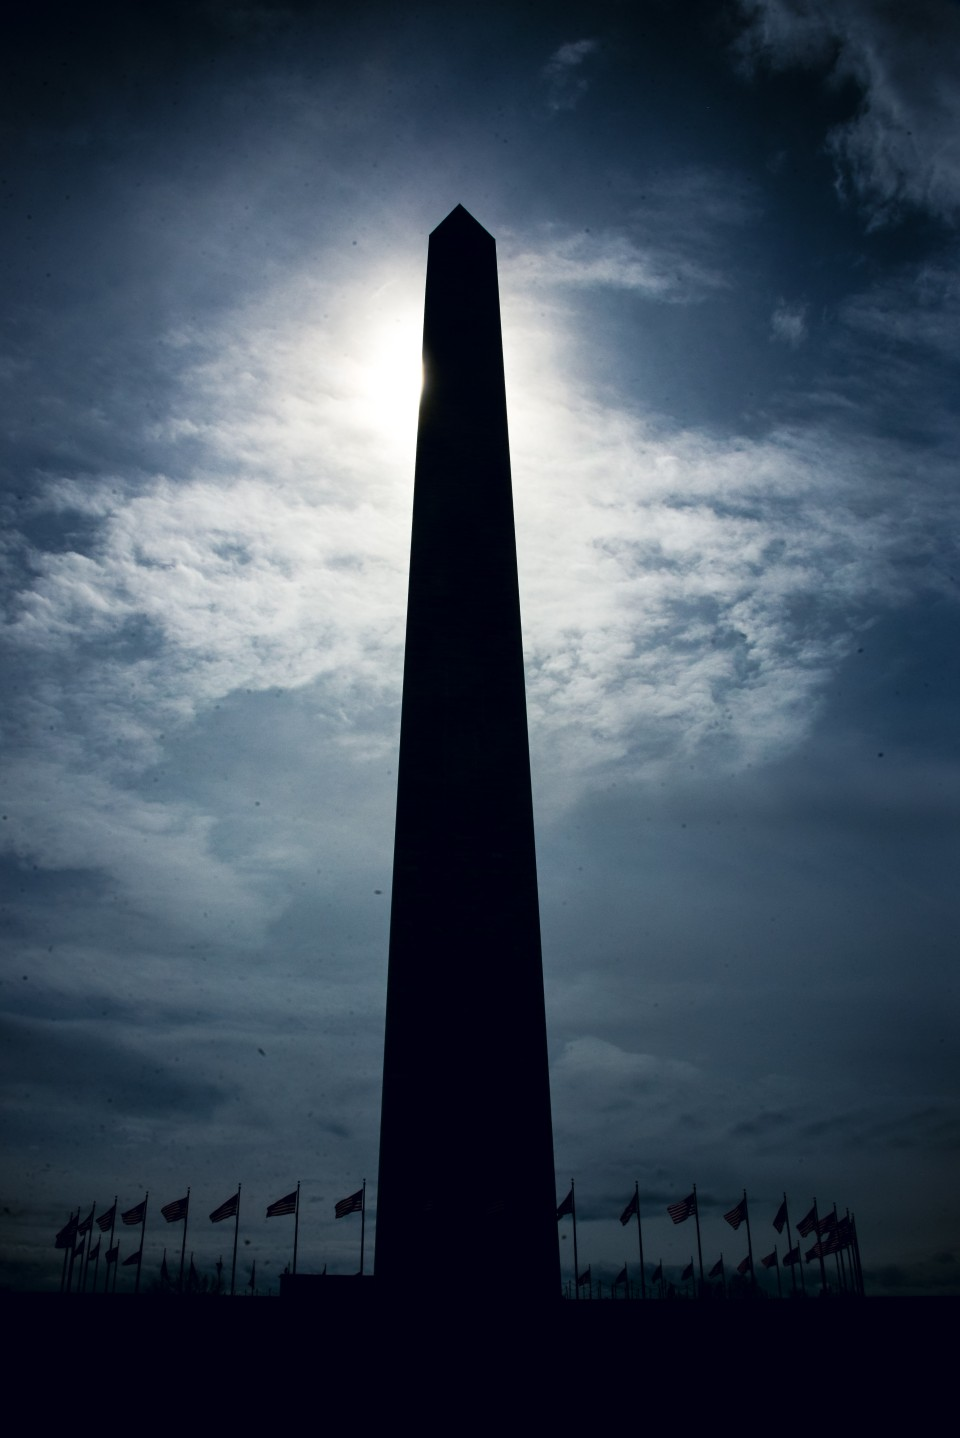 http://humanstories.photography/wp-content/uploads/2015/03/washington-monument-001-copy-960x1438_c.jpg